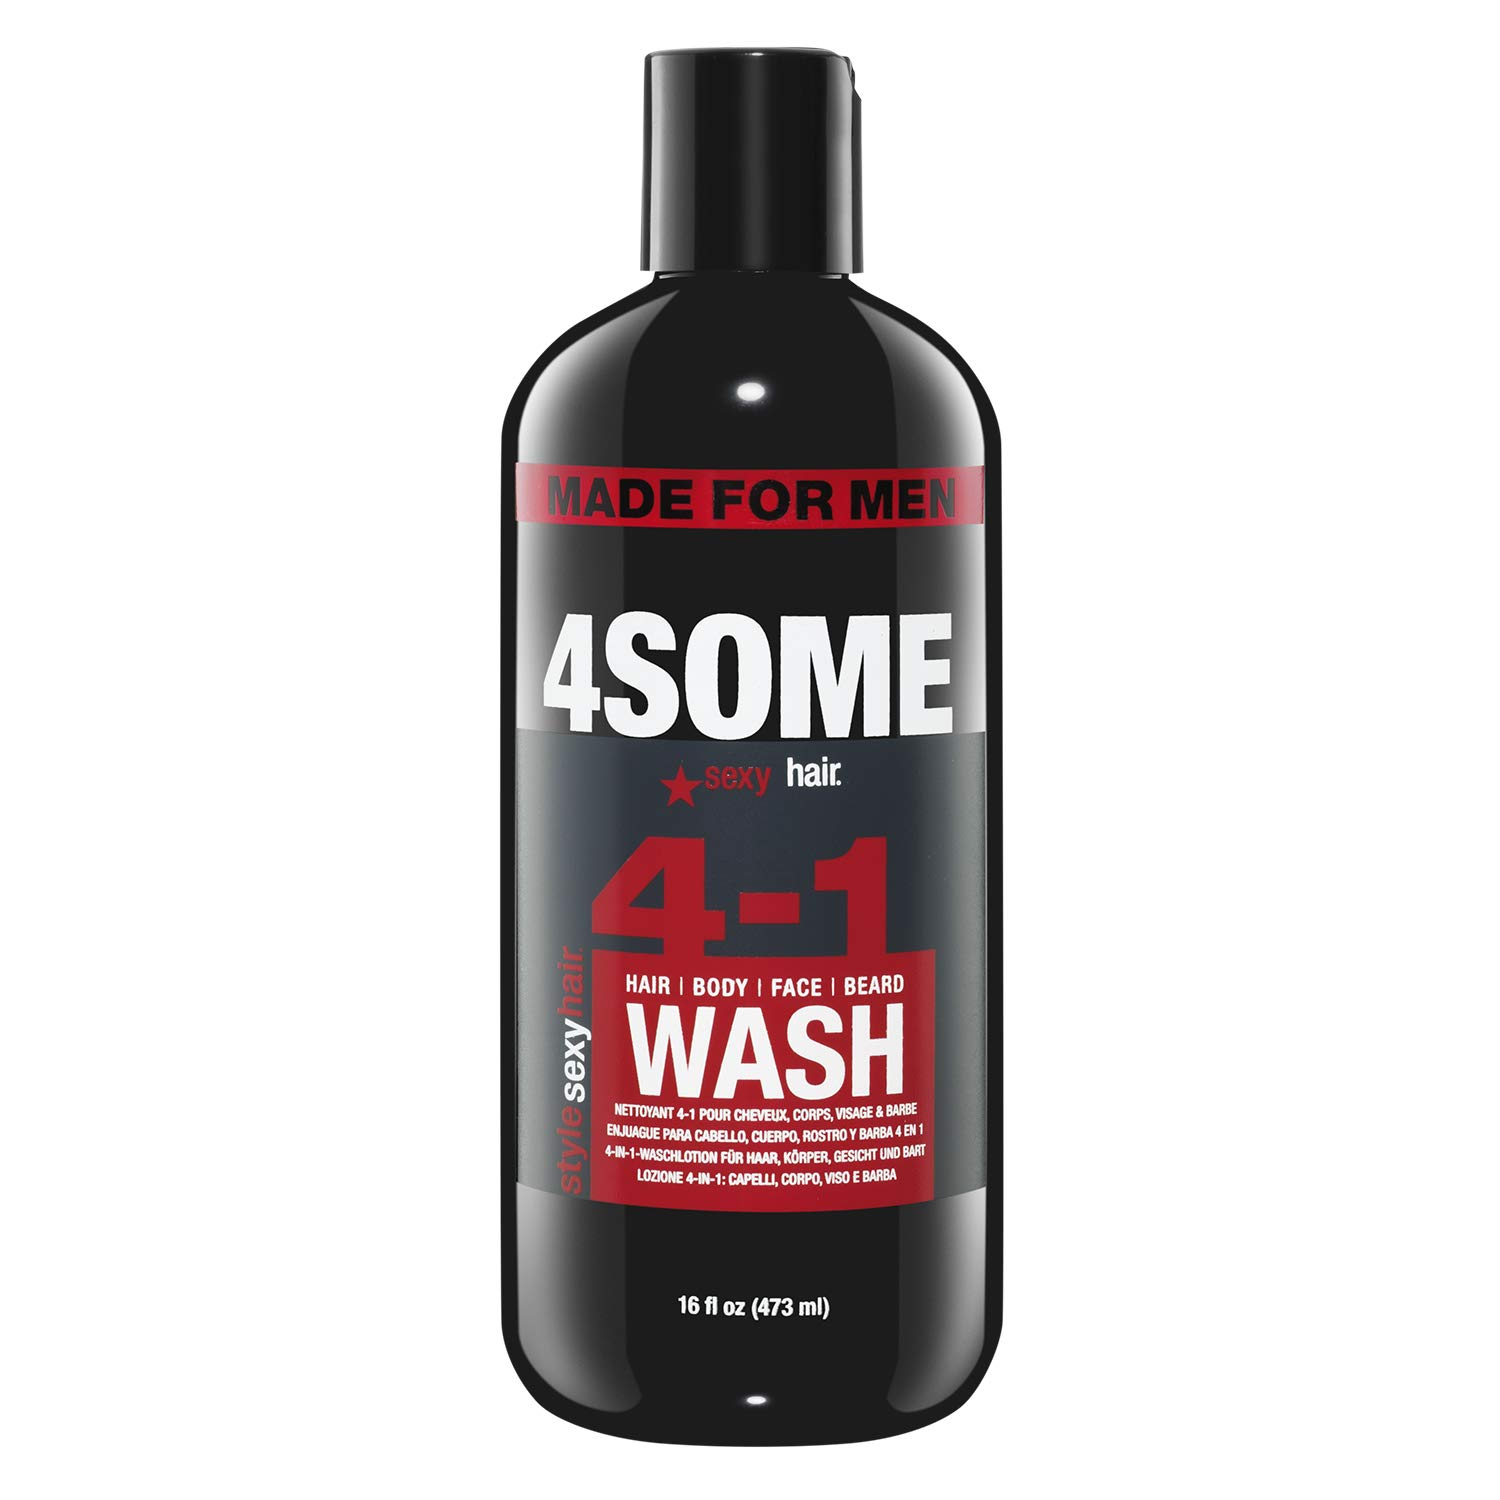 SexyHair Free Shipping New Style 4some 4-in-1 Hair Body Wash 16 Beard Oakland Mall Face Oz